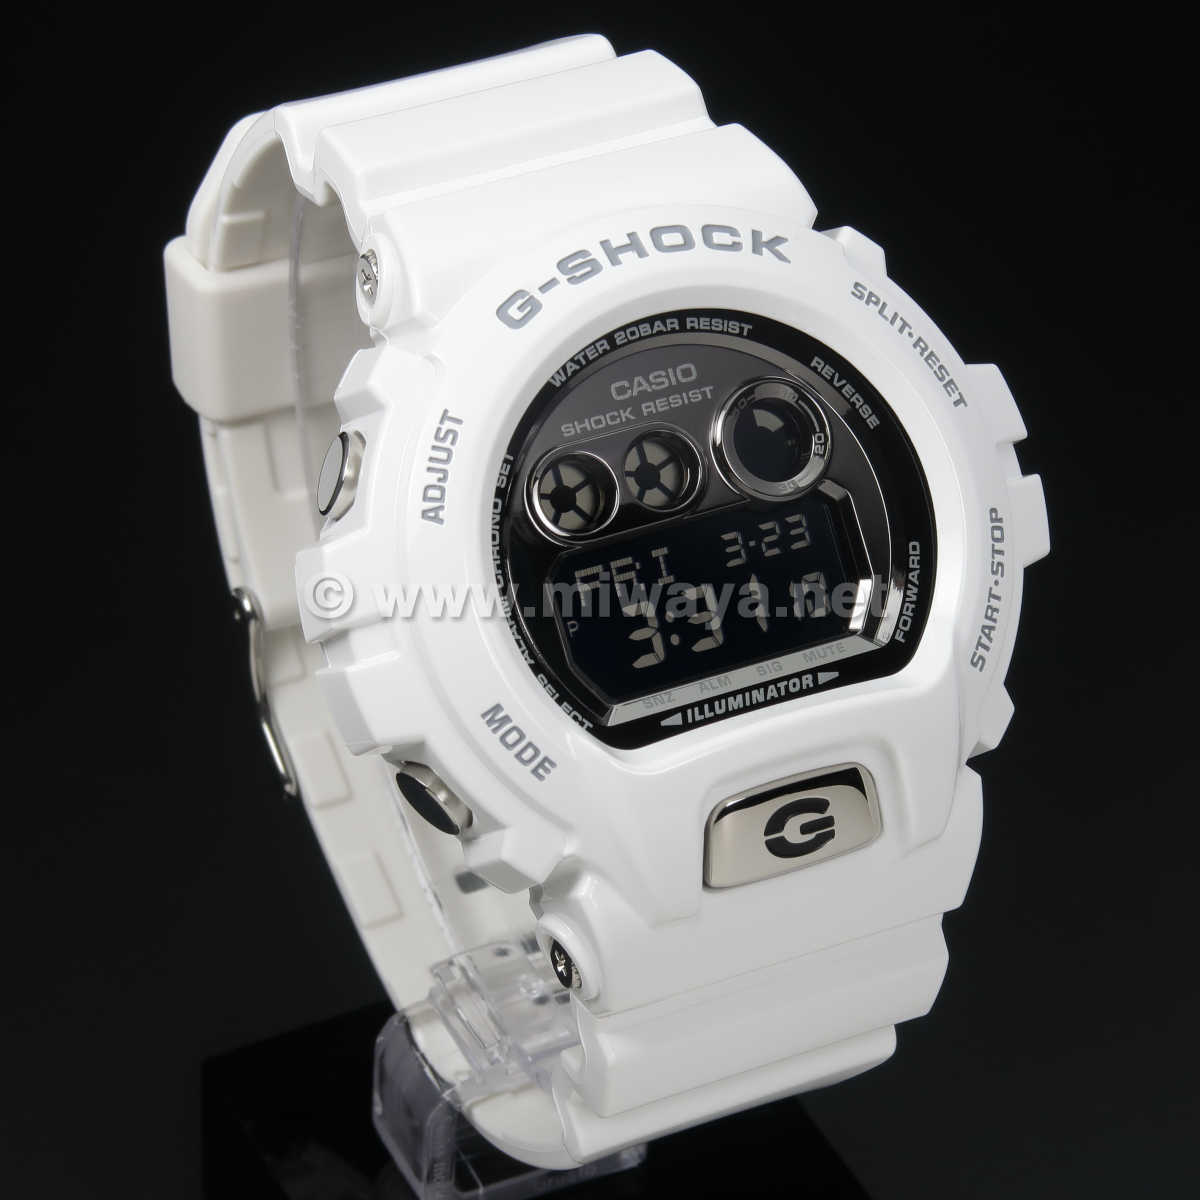 【G-SHOCK】GD-X6900FB-7JF